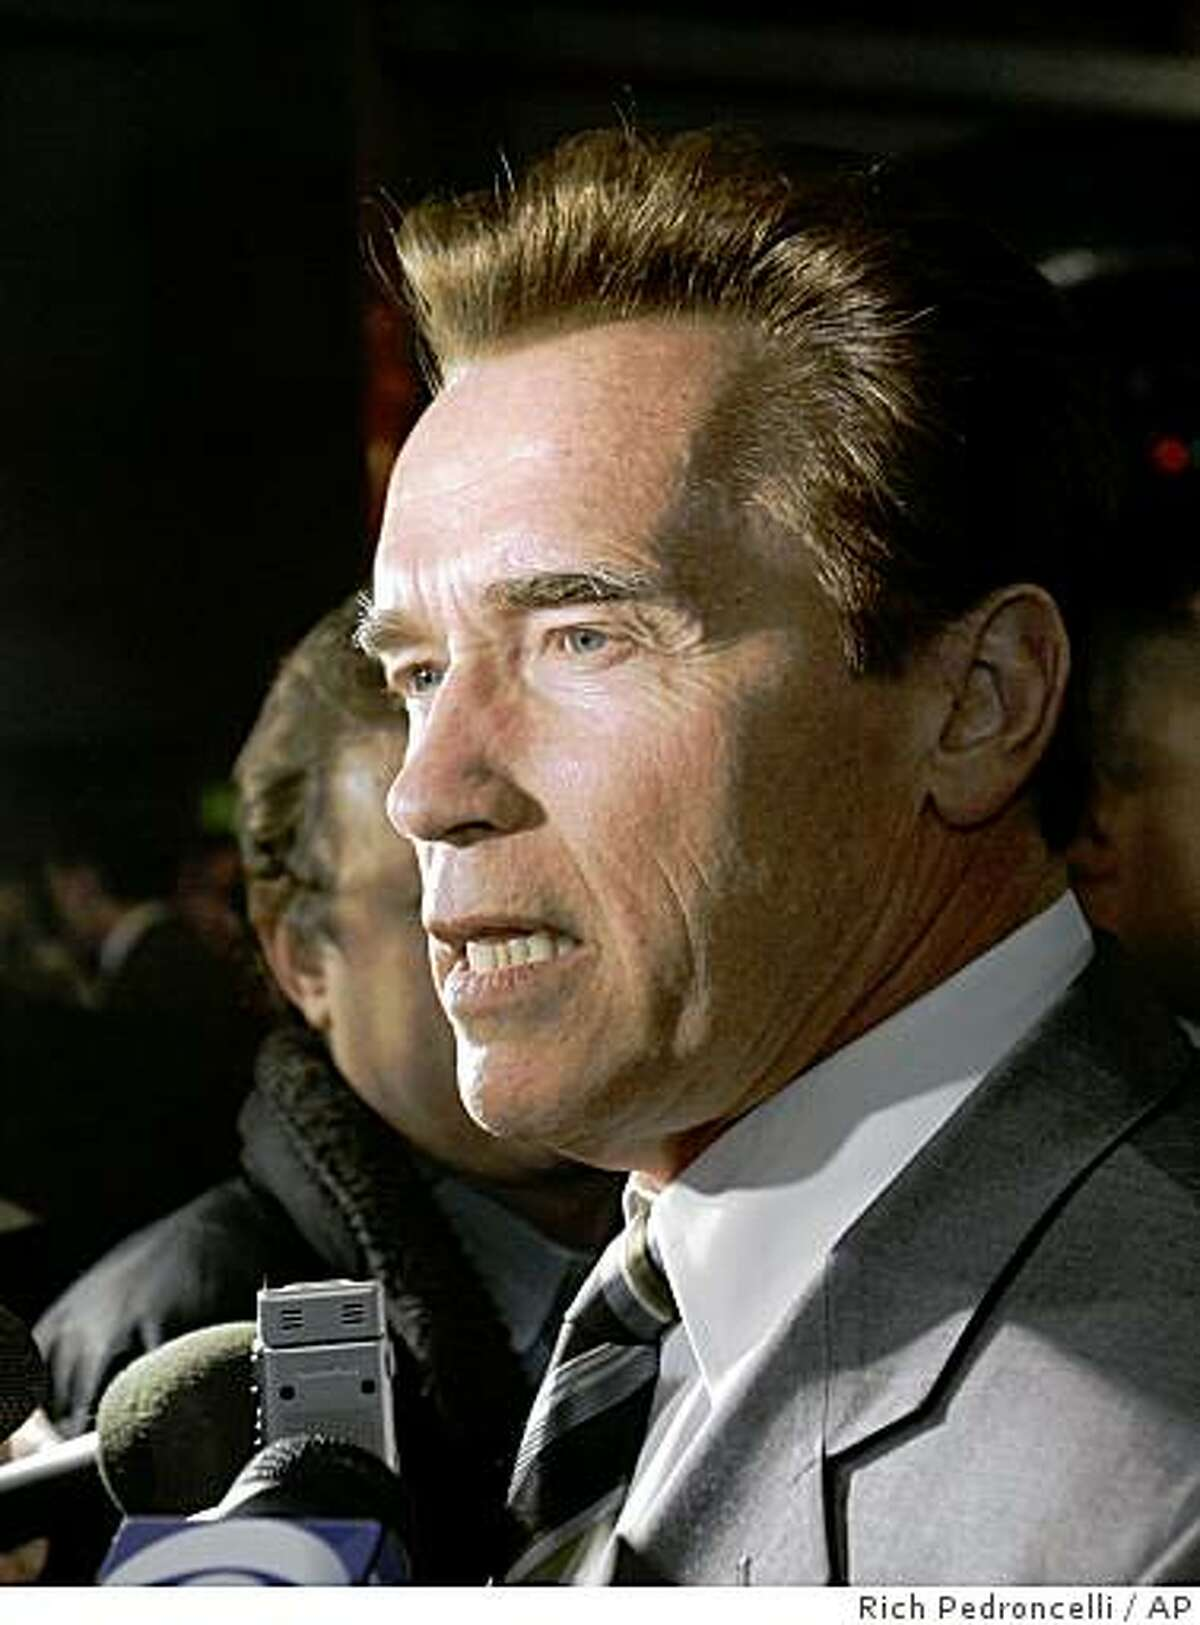 Gov. Arnold Schwarzenegger said that he was sad that California would lose jobs and halt projects while commenting on a state panel's decision to stop financing nearly all infrastructure projects, while talking to reporters in Sacramento, Calif., Wednesday, Dec. 17, 2008. The three-member Pooled Money Investment Board voted 3-0 not to lend money for an estimated 2,000 infrastructure projects statewide, through June, halting nearly $4 billion in loans for everything from freeway interchanges to classrooms.(AP Photo/Rich Pedroncelli)